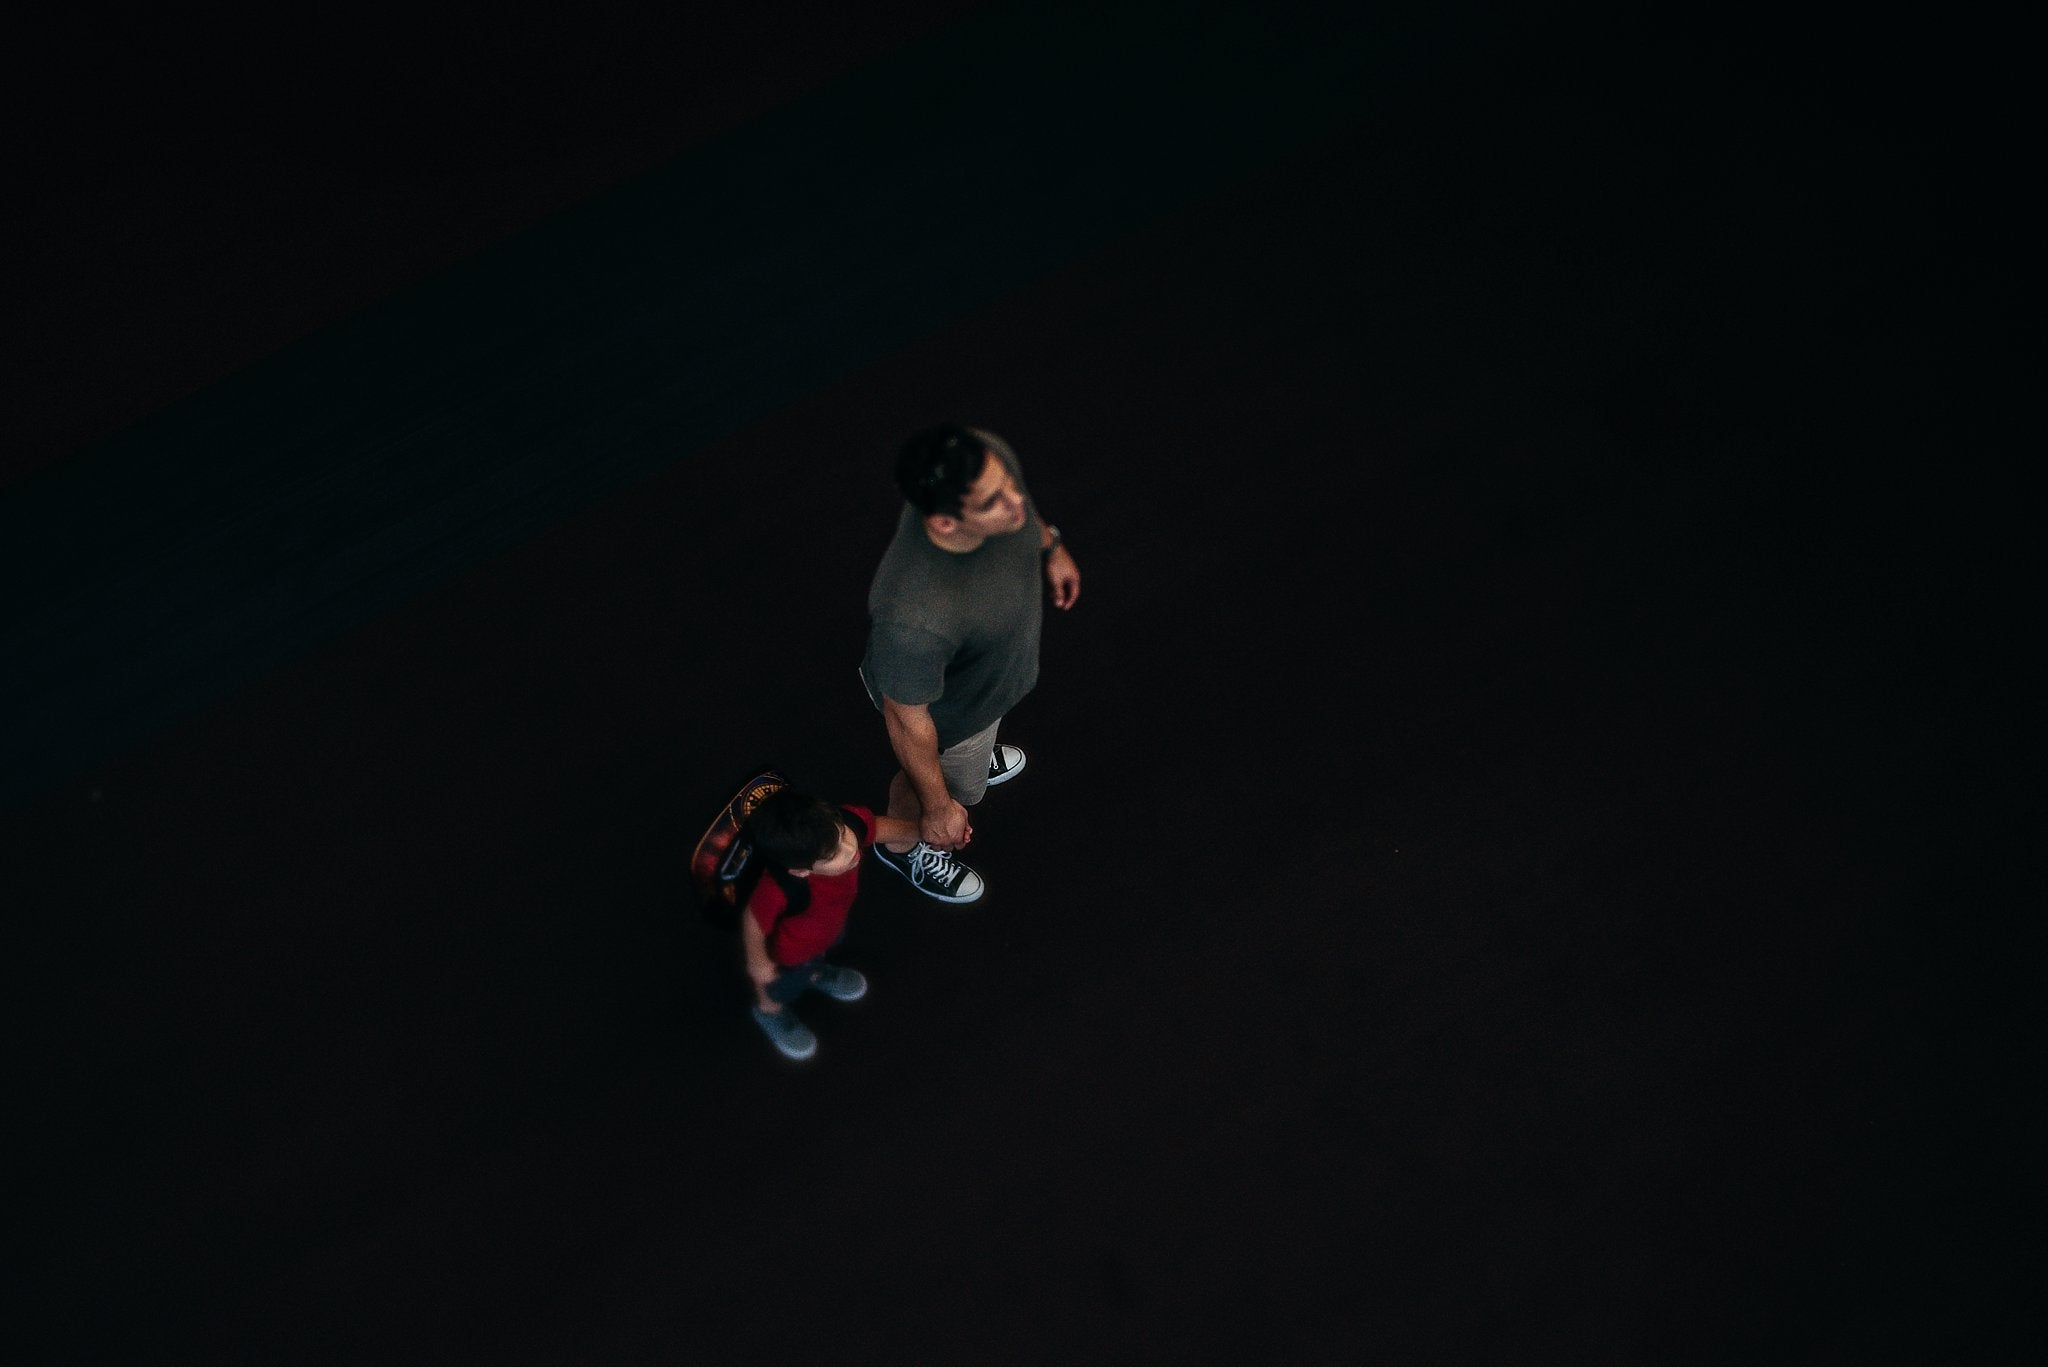 man and boy holding hands view from above looking down dark background Chelsea Lyn Lensbaby Challenge